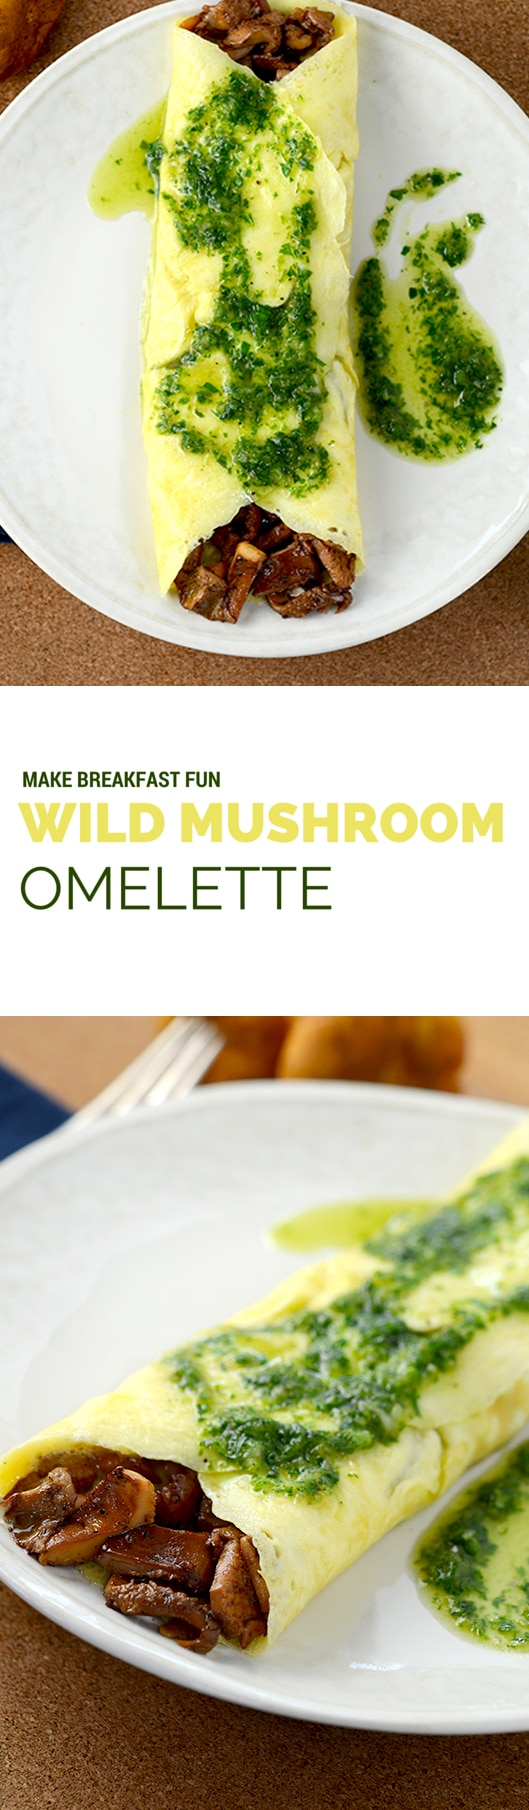 wild mushroom omelette recipe that you'll go wild for! Topped with a ...